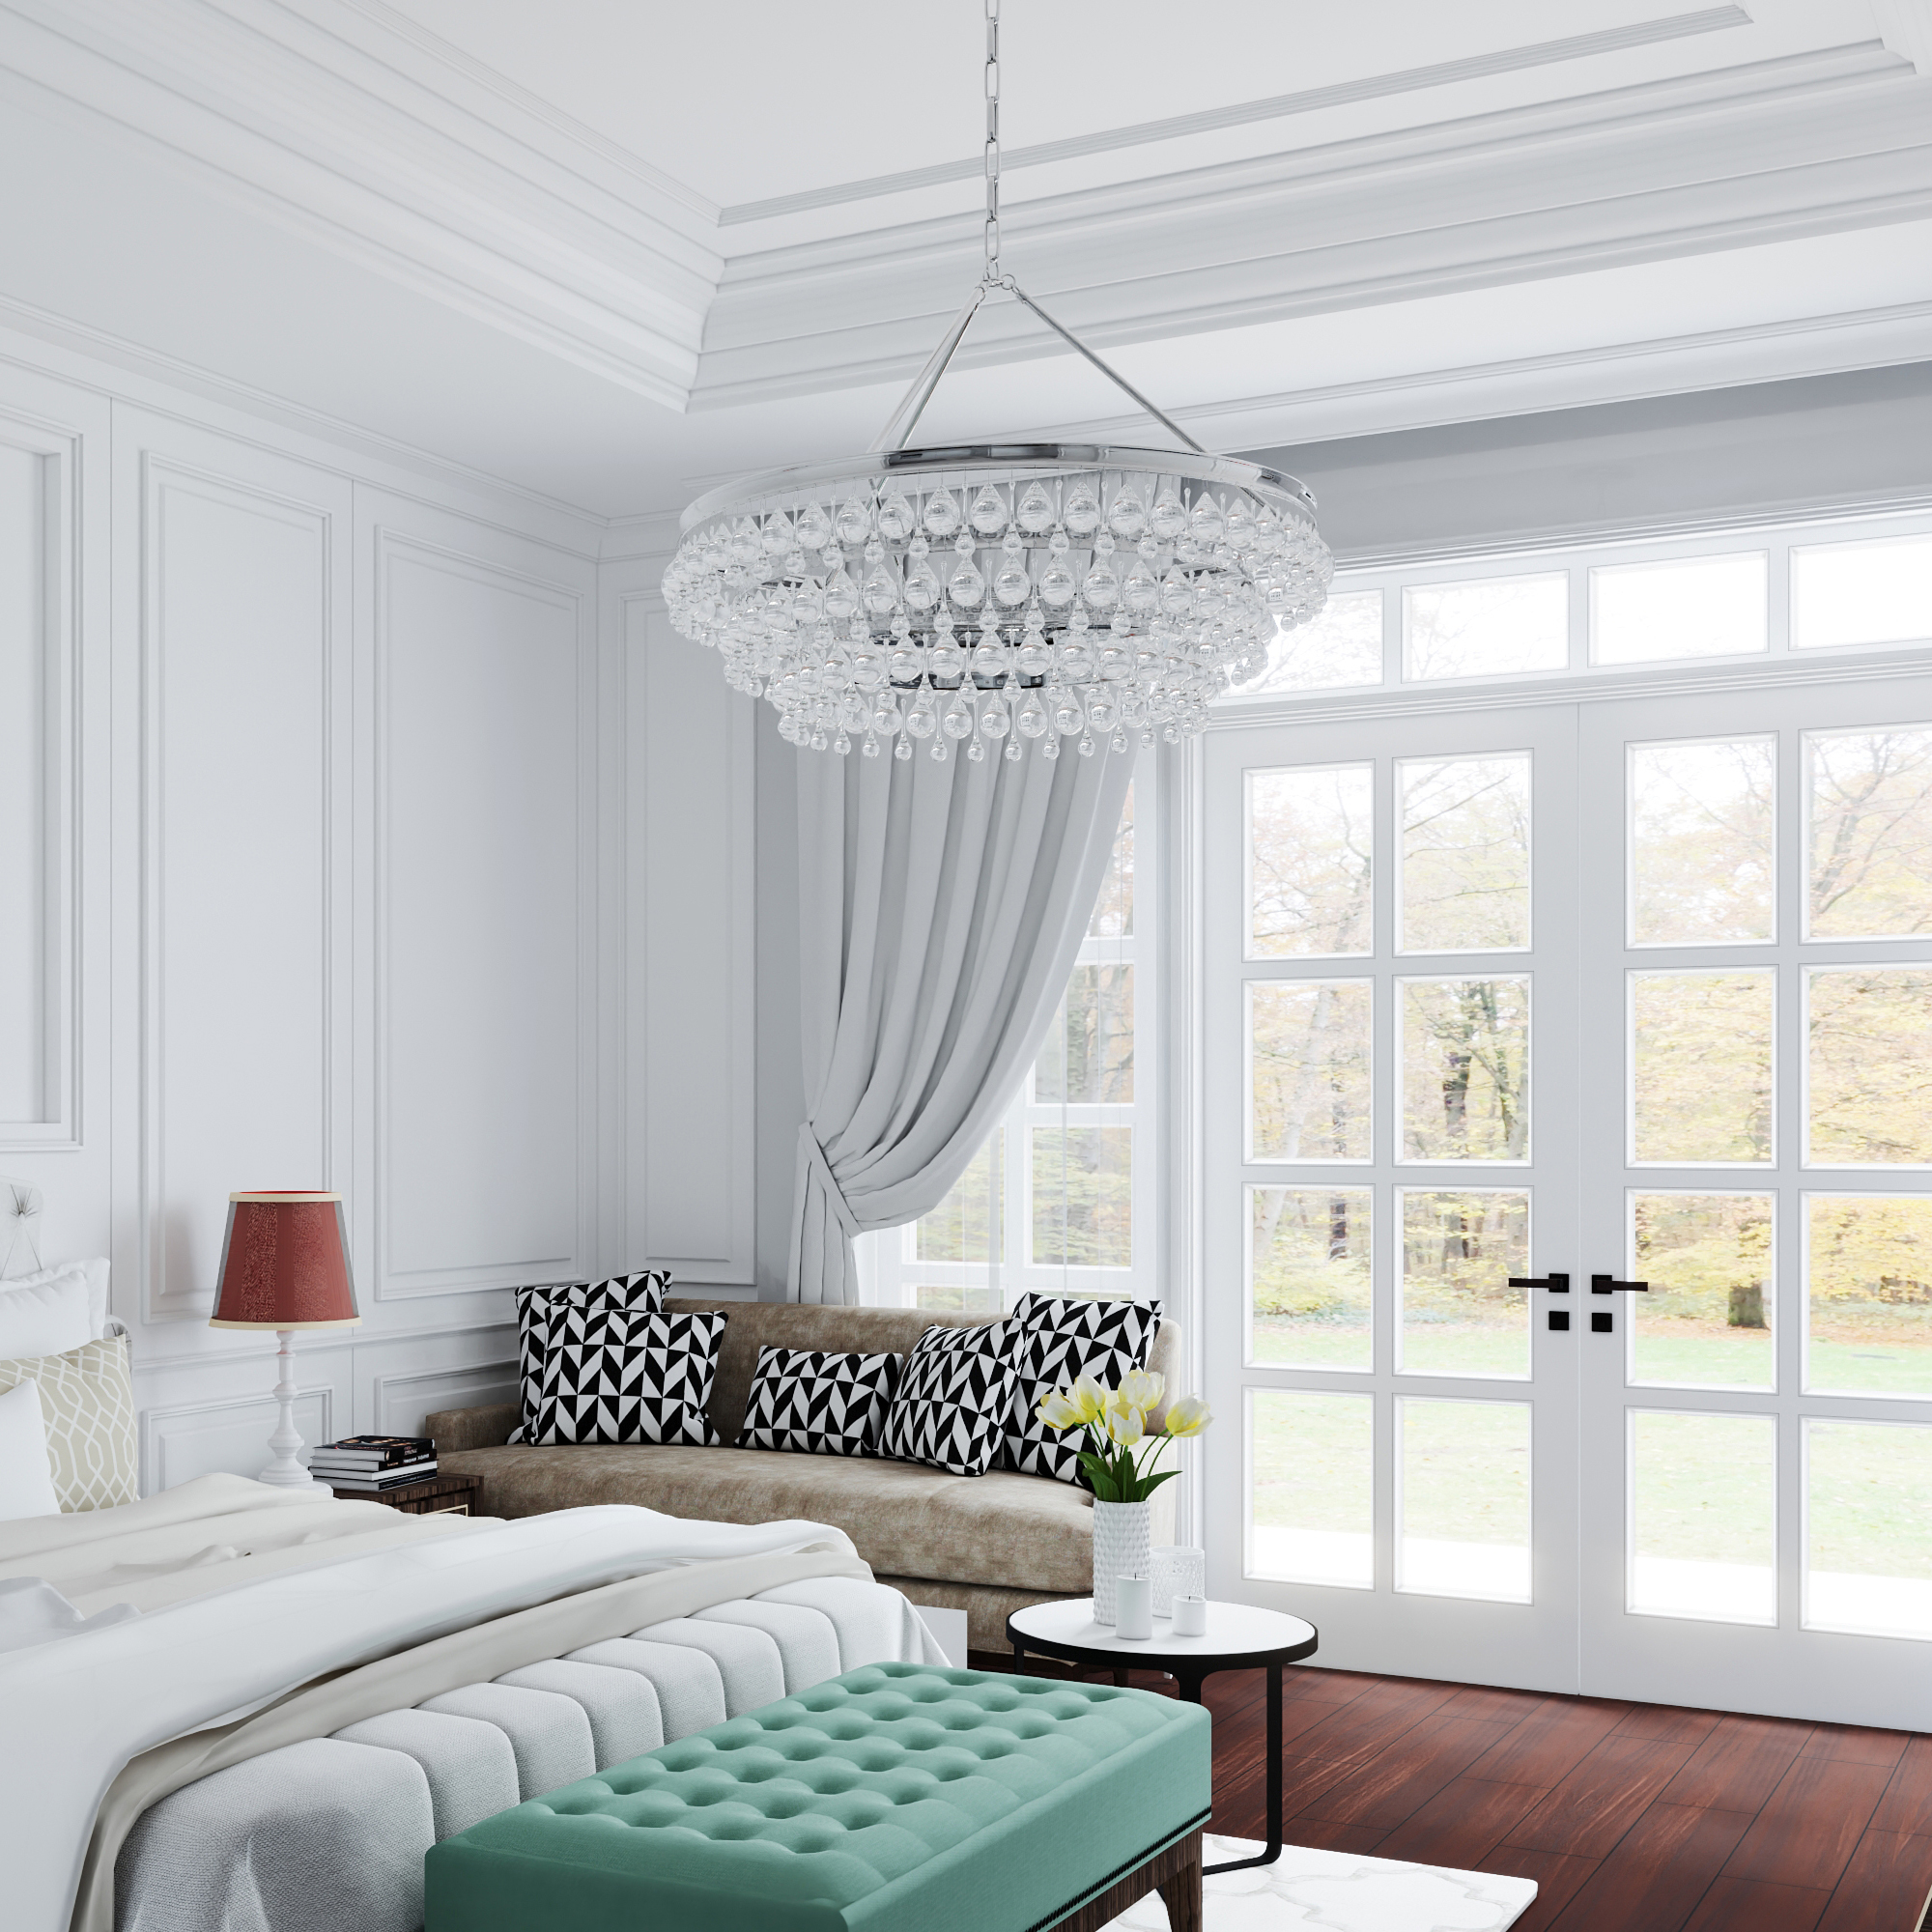 Why American lighting specialist Crystorama chose 3D lifestyle scenes for product visualization